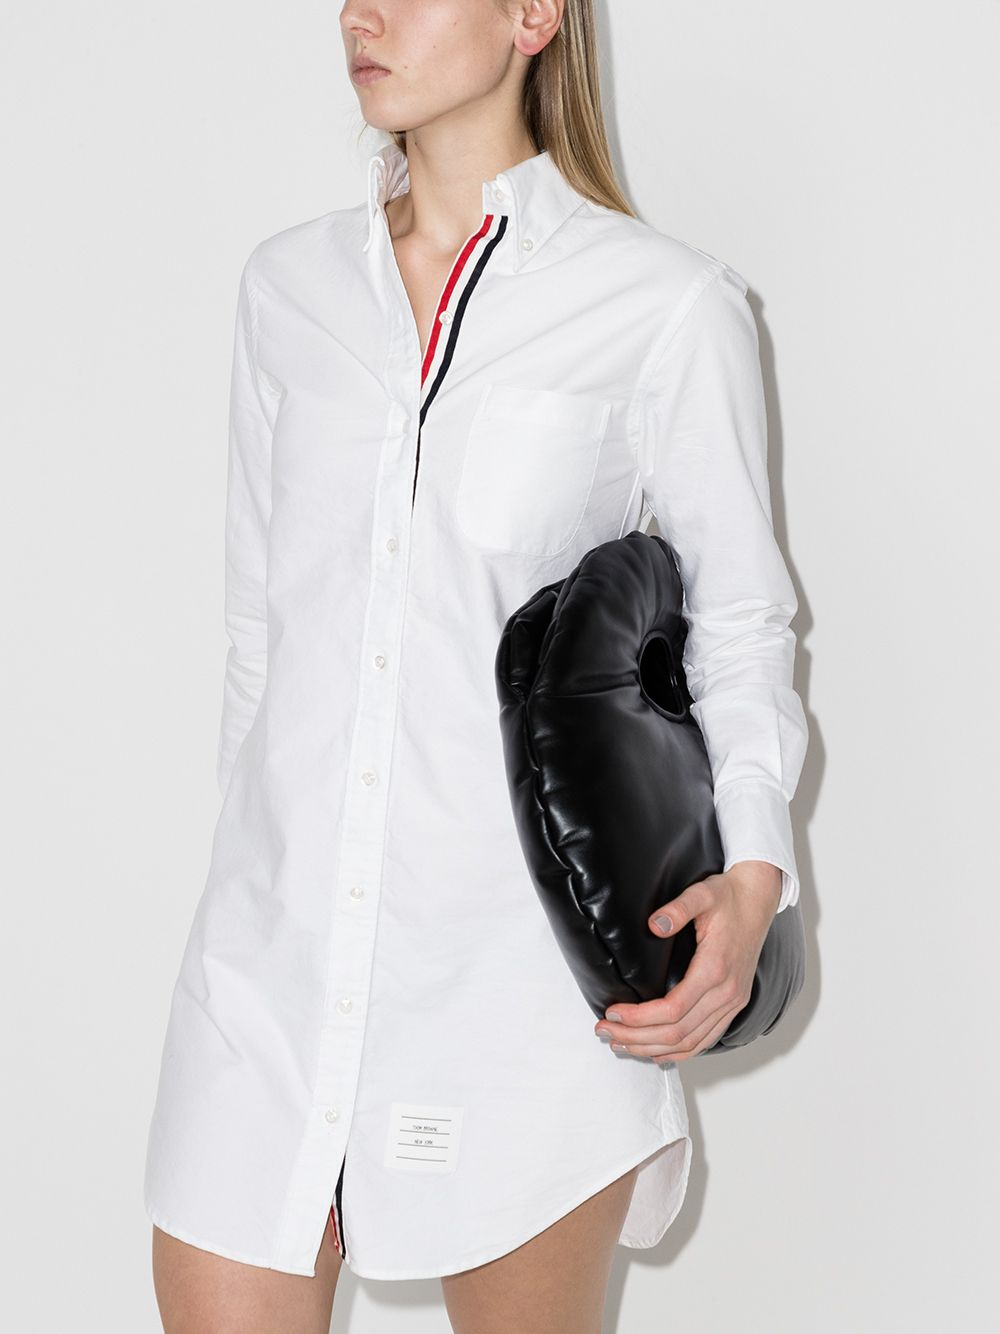 THOM BROWNE THIGH LENGTH L/S COLLAR SHIRTDRESS W/ GG PLACKET IN OXFORD